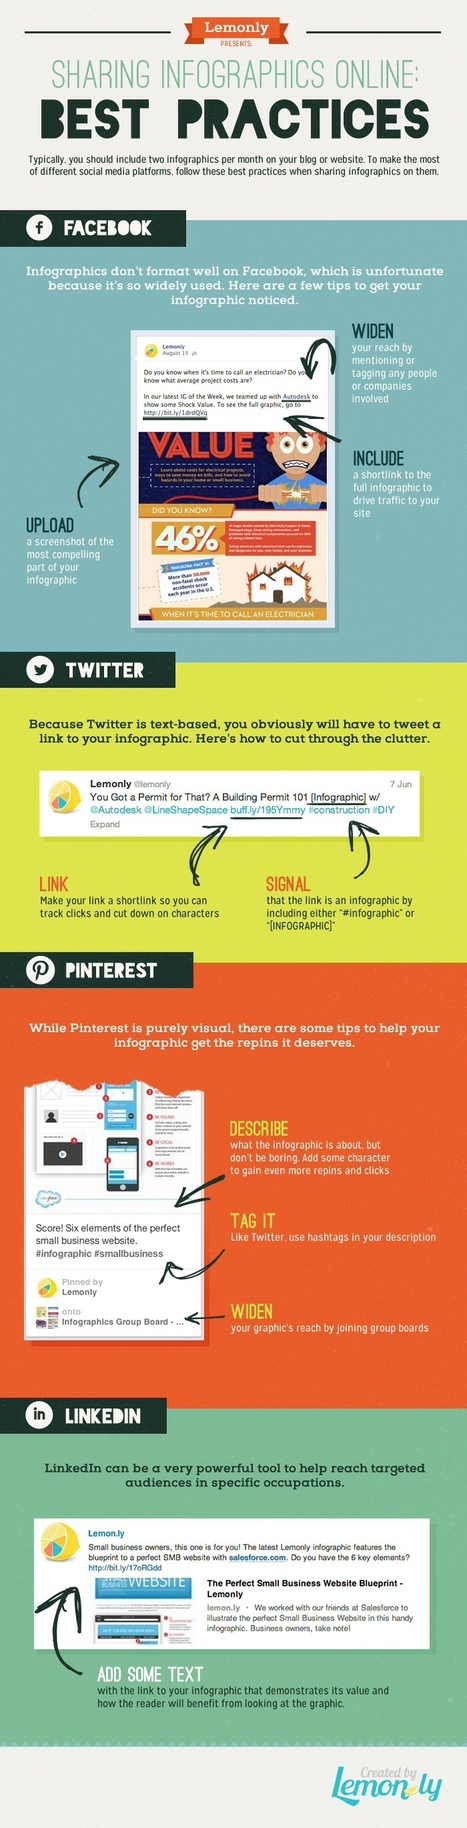 Best Practices for Sharing Infographics on Social Media [INFOGRAPHIC] | Tools for journalists | Scoop.it